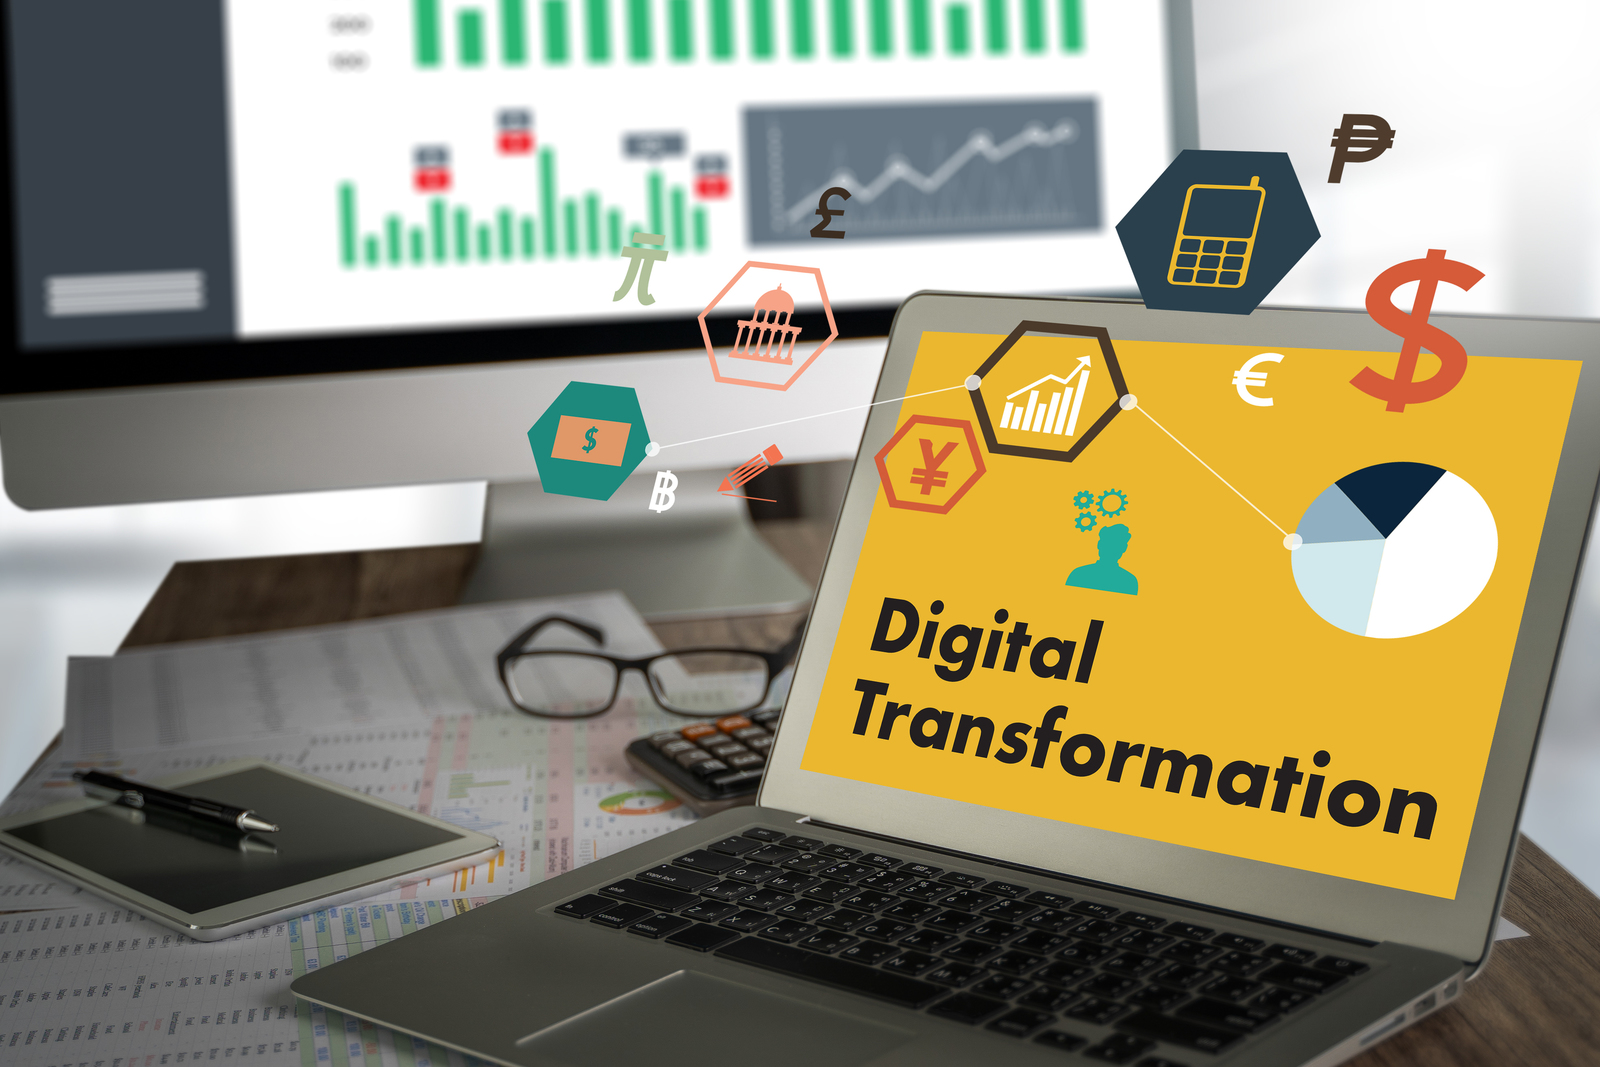 digital transformation of processes